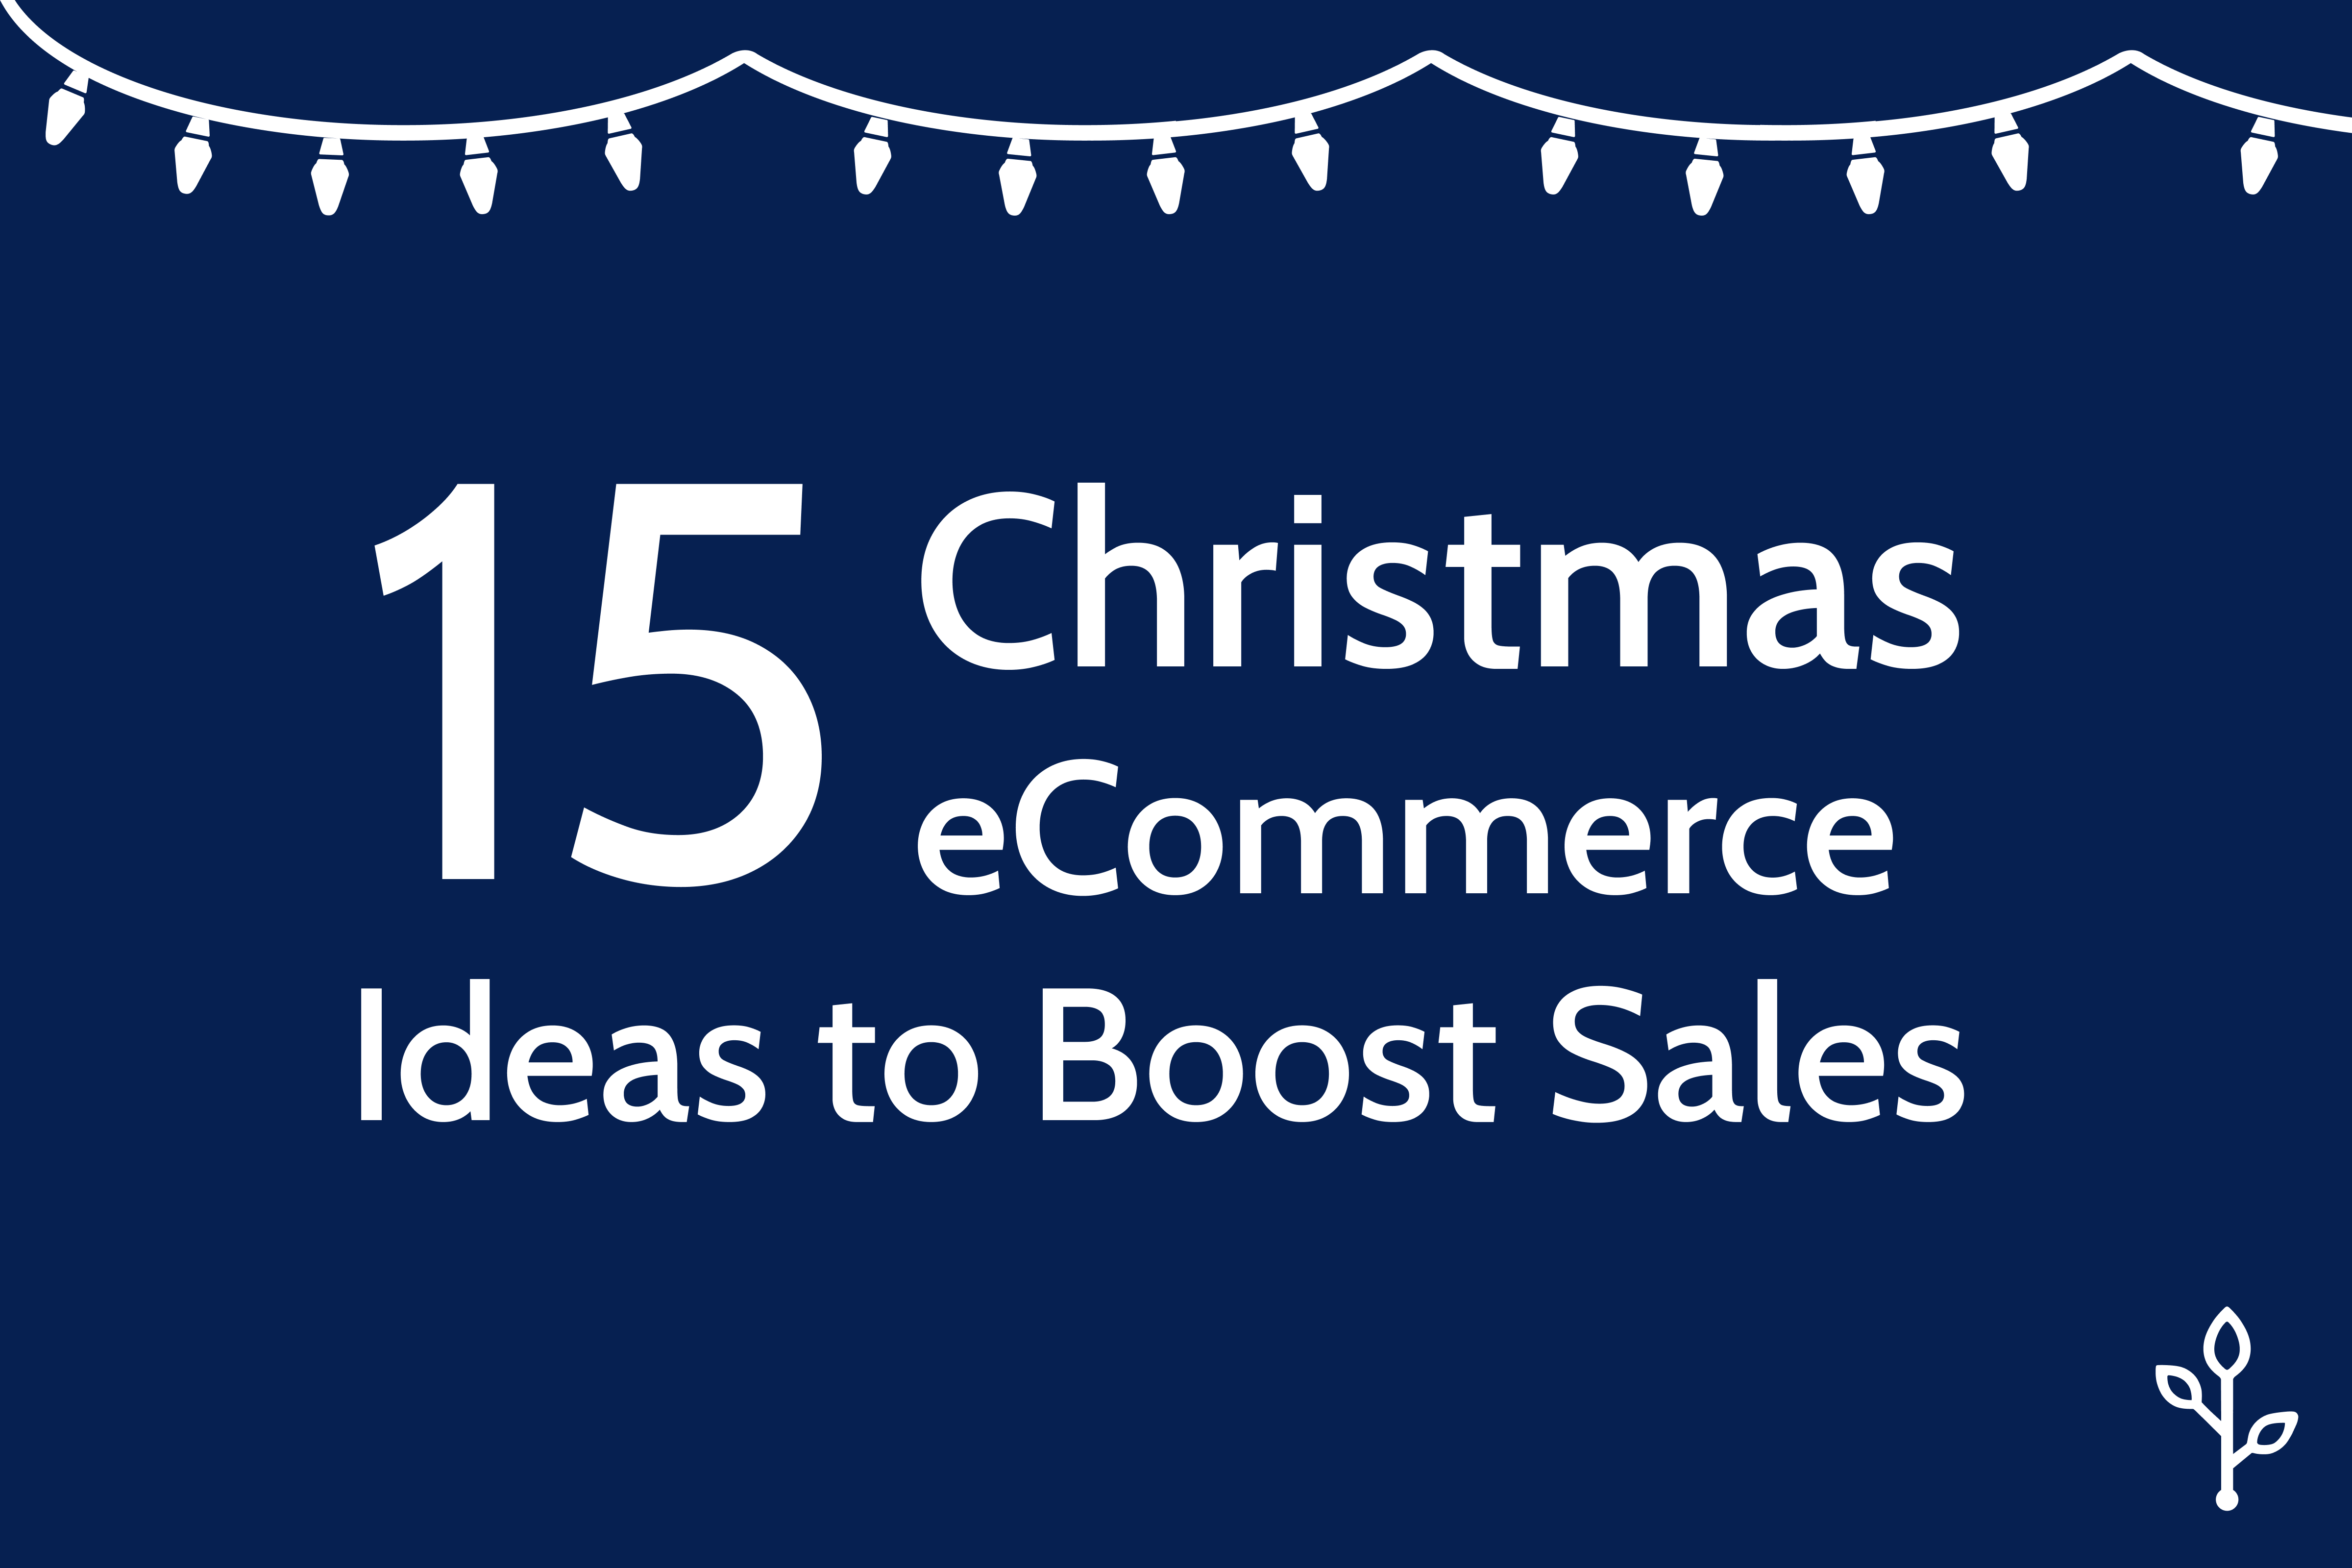 15 Christmas eCommerce Ideas to Boost Sales